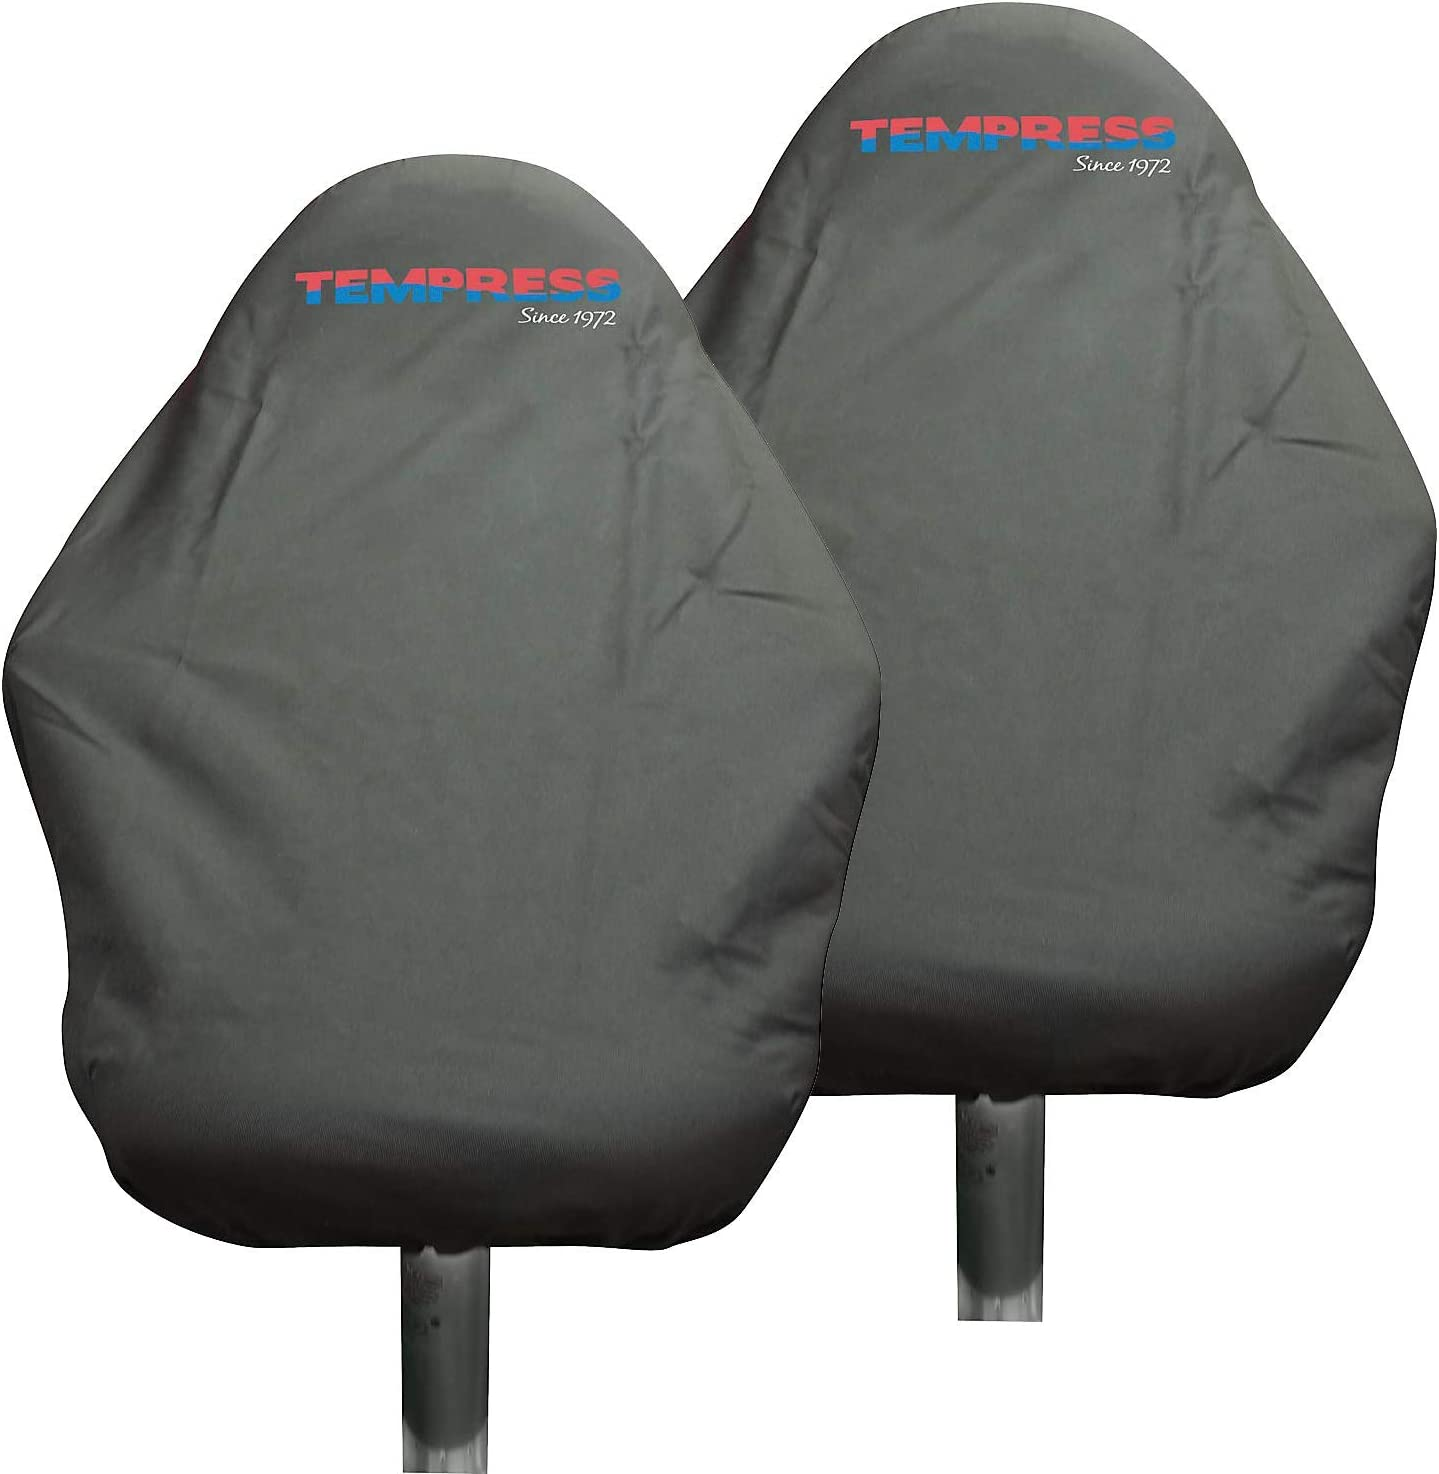 Tempress 即納最大半額 Water Resistant Protective Boat for Seat 期間限定今なら送料無料 Fishing Cover